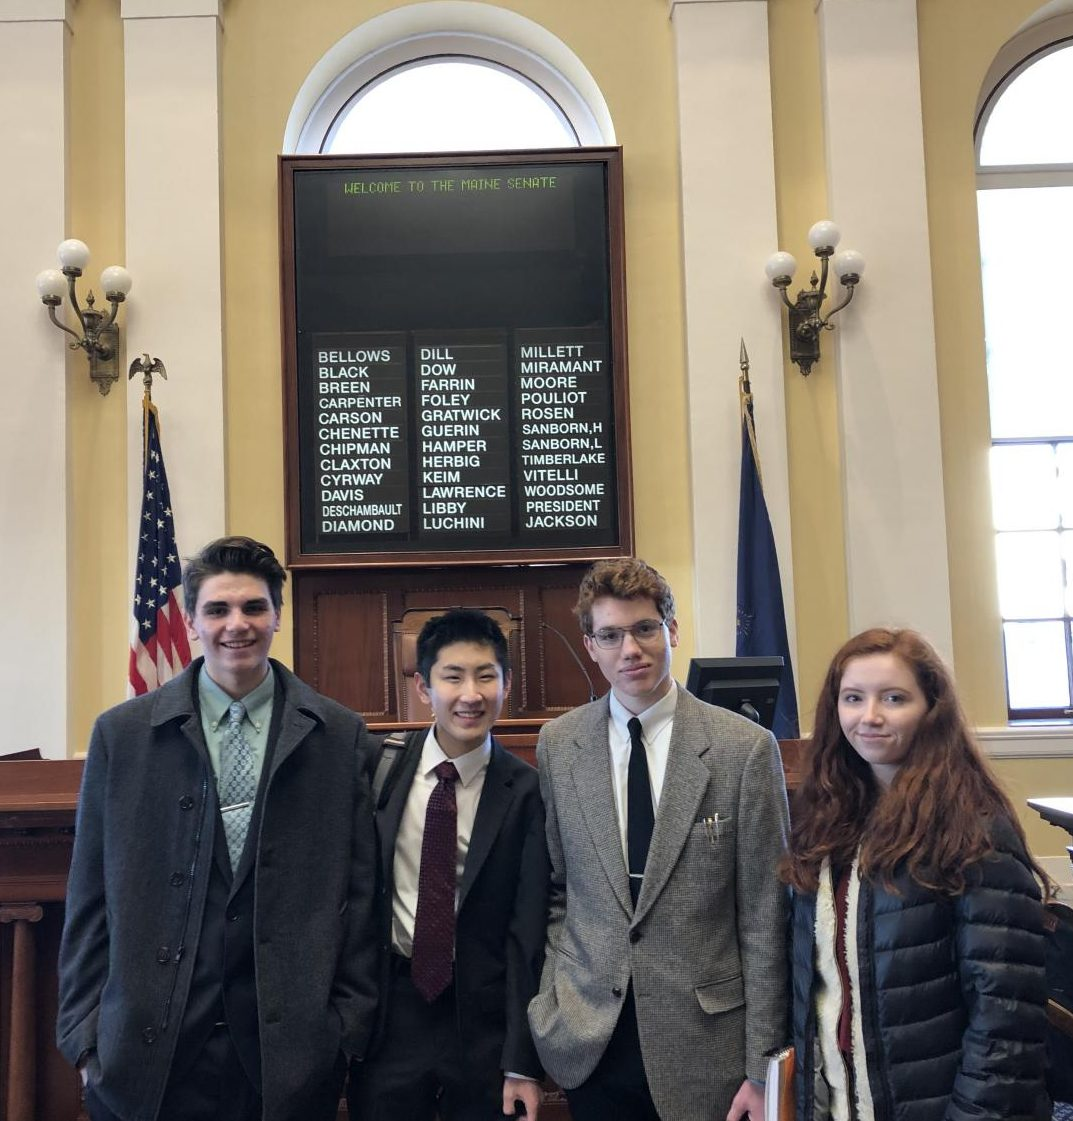 Zach Whiting, Carson Bell, Ben Hall, and Wren Payne in the State Senate Chambers.